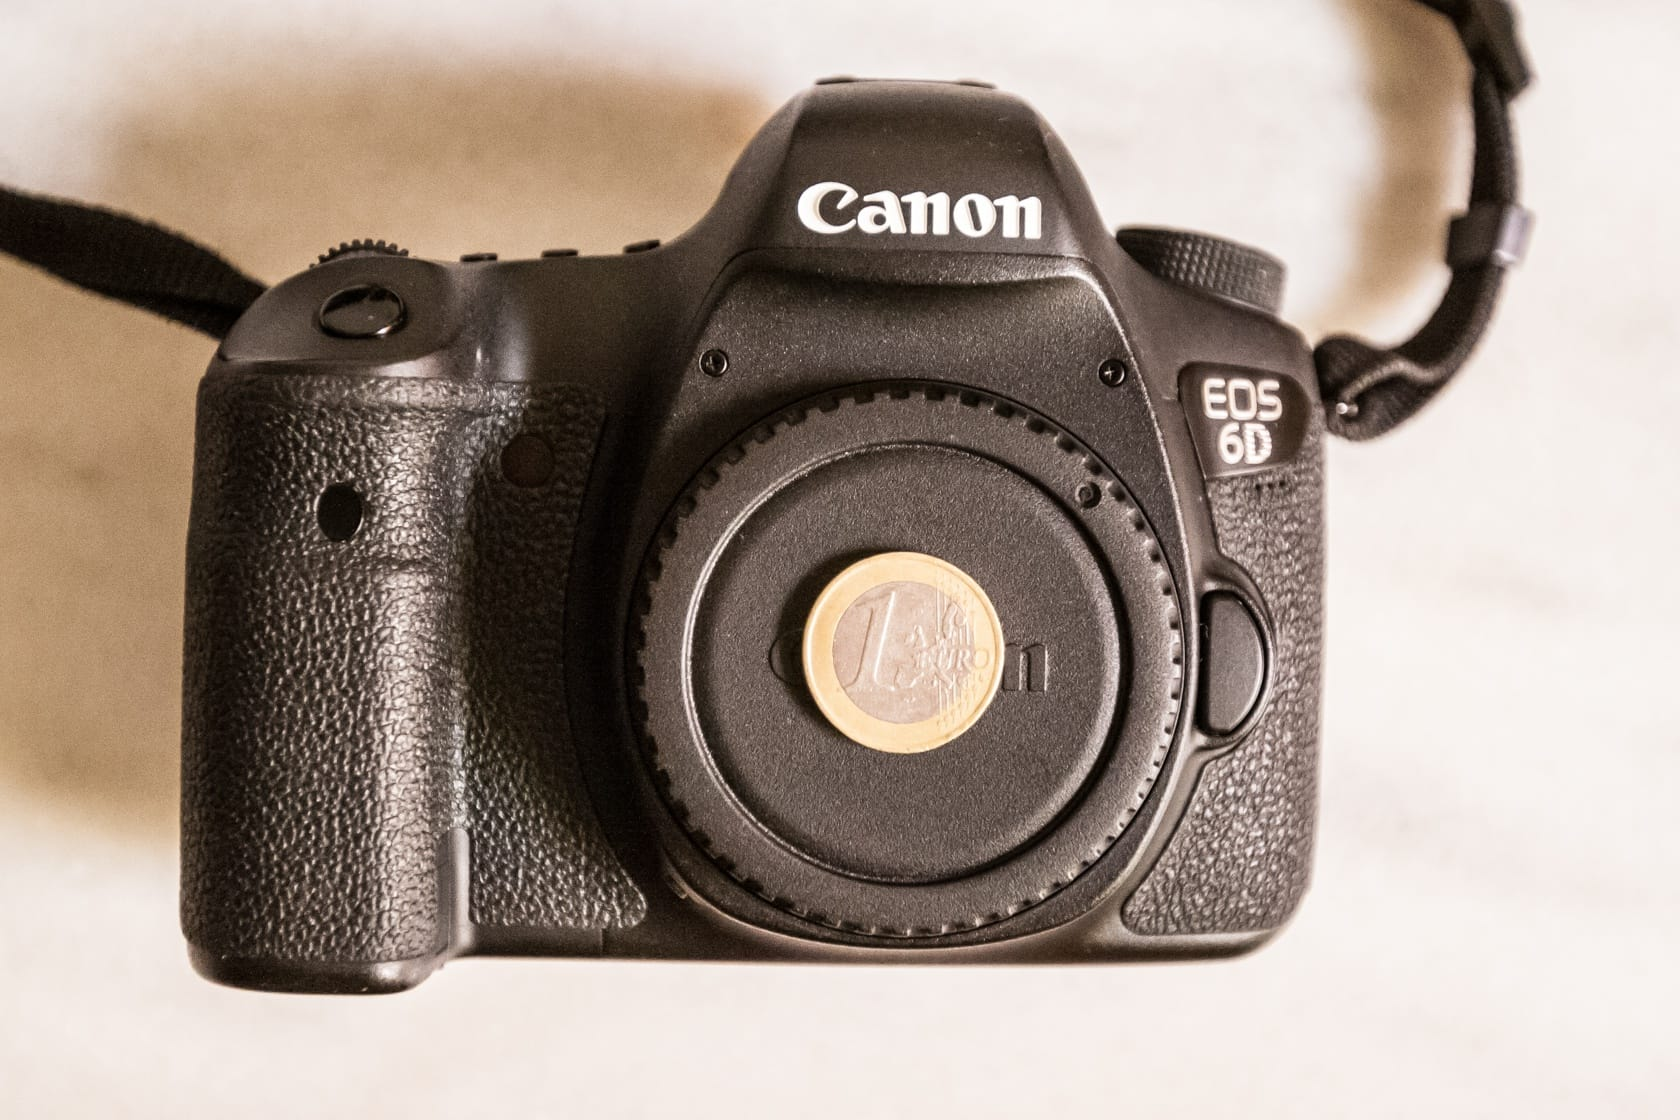 Front of the Canon 6D